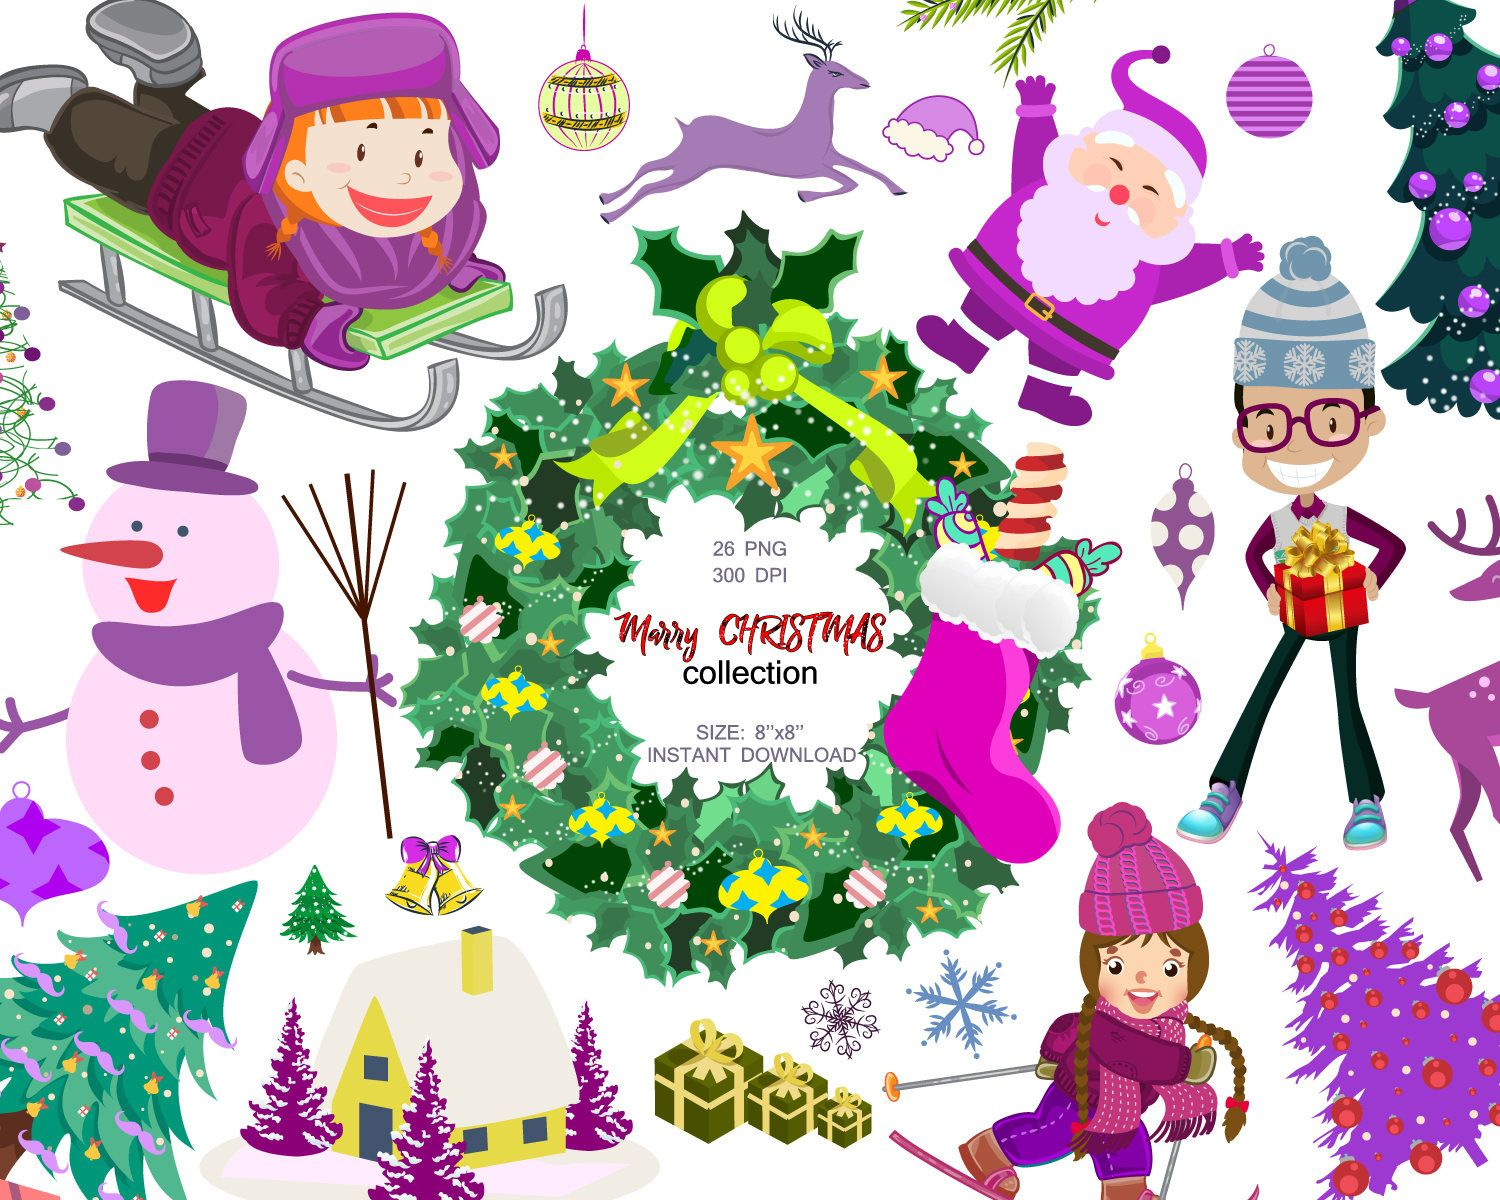 Marry Christmas collection, Christmas Clipart, Santa Claus.